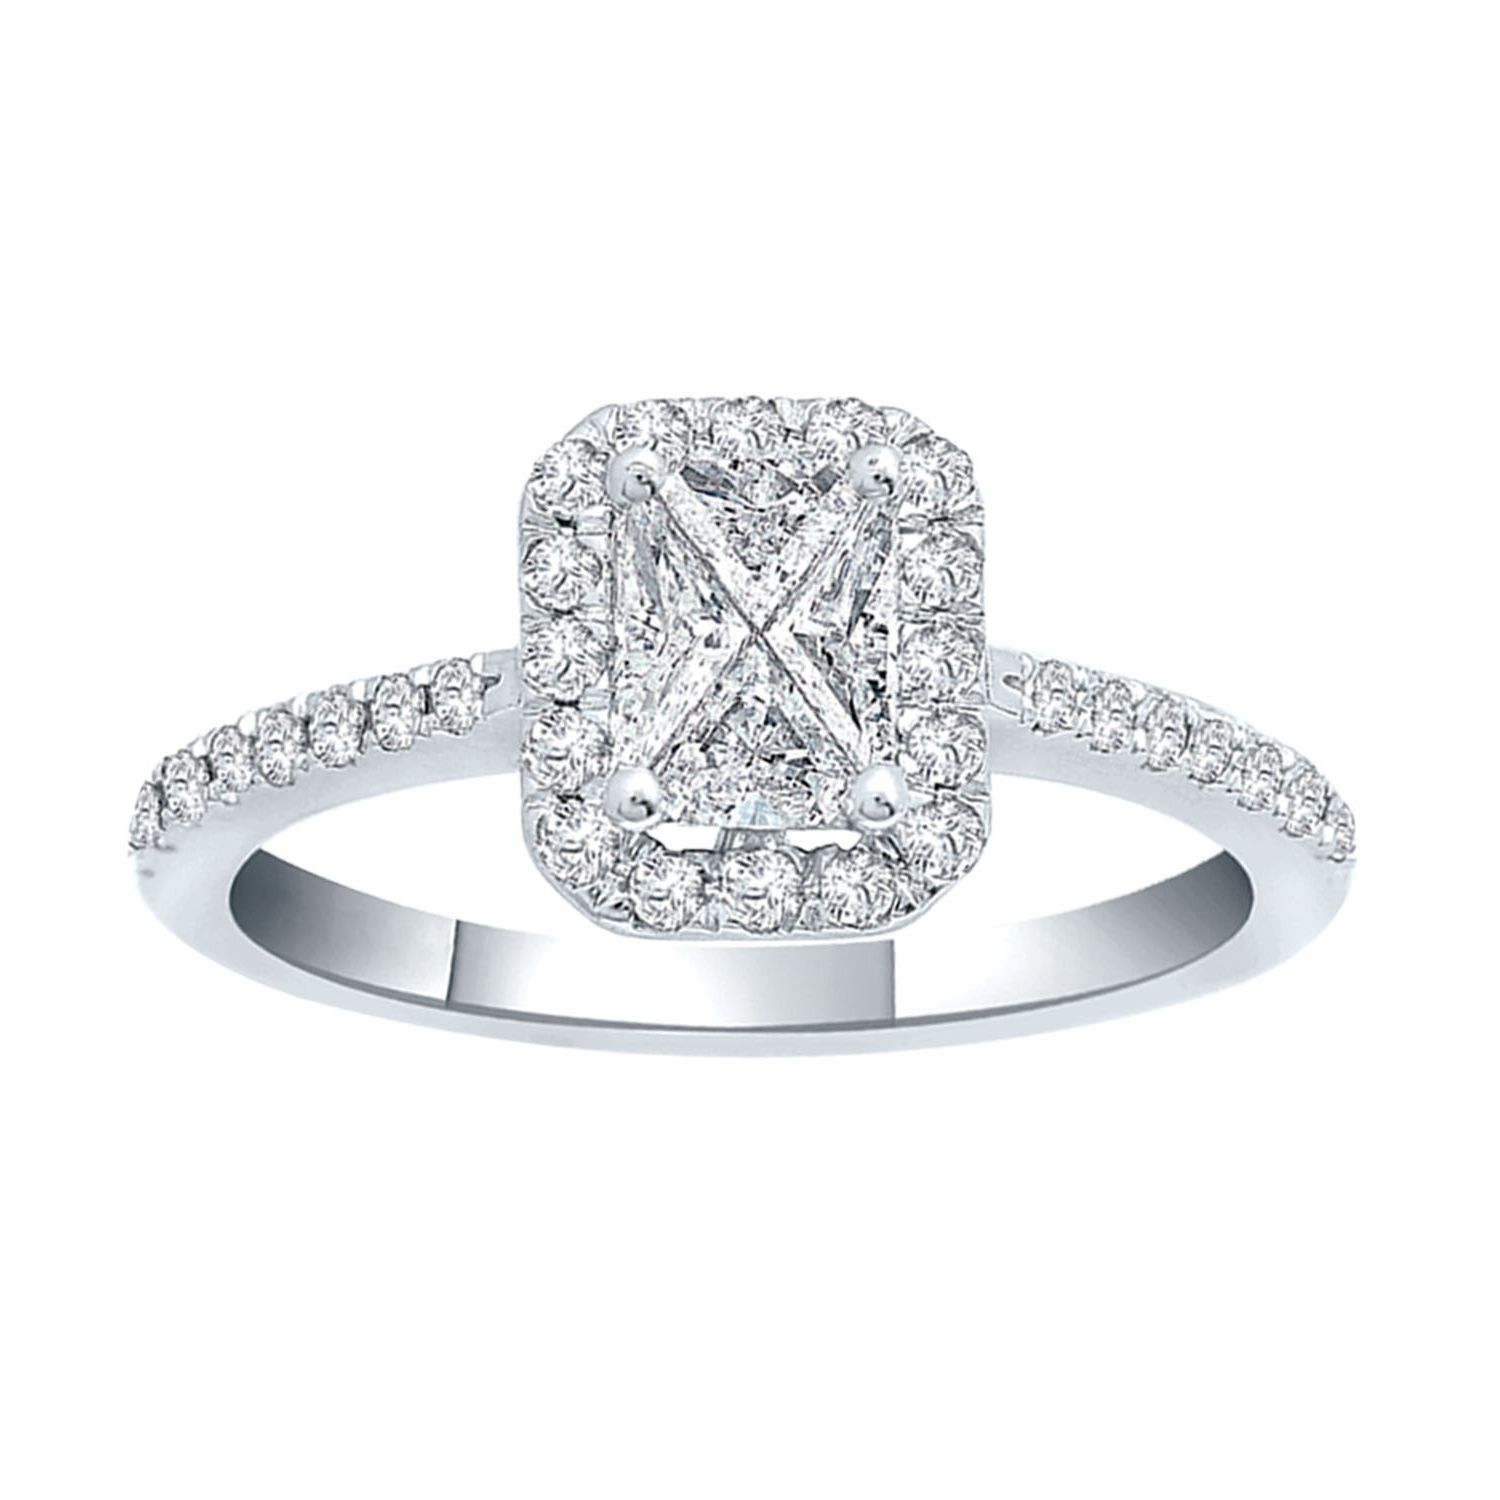 Pay Monthly Engagement Rings No Credit Check Ring Pinterest